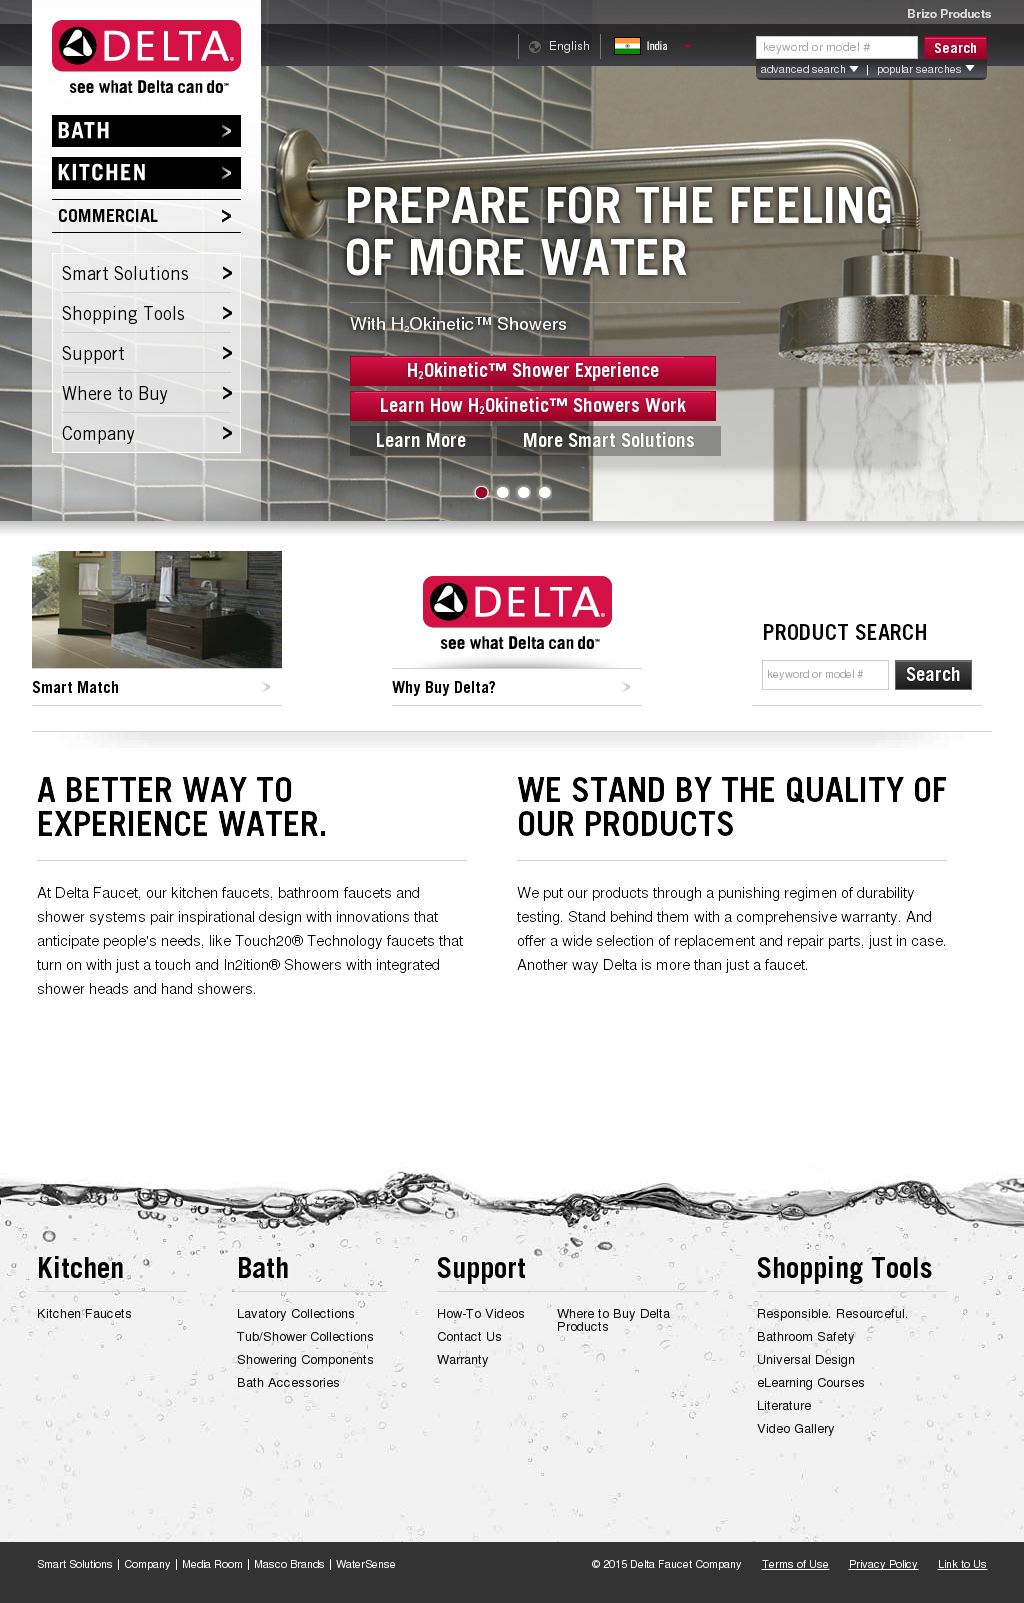 Delta Faucet Company Competitors, Revenue and Employees - Company ...